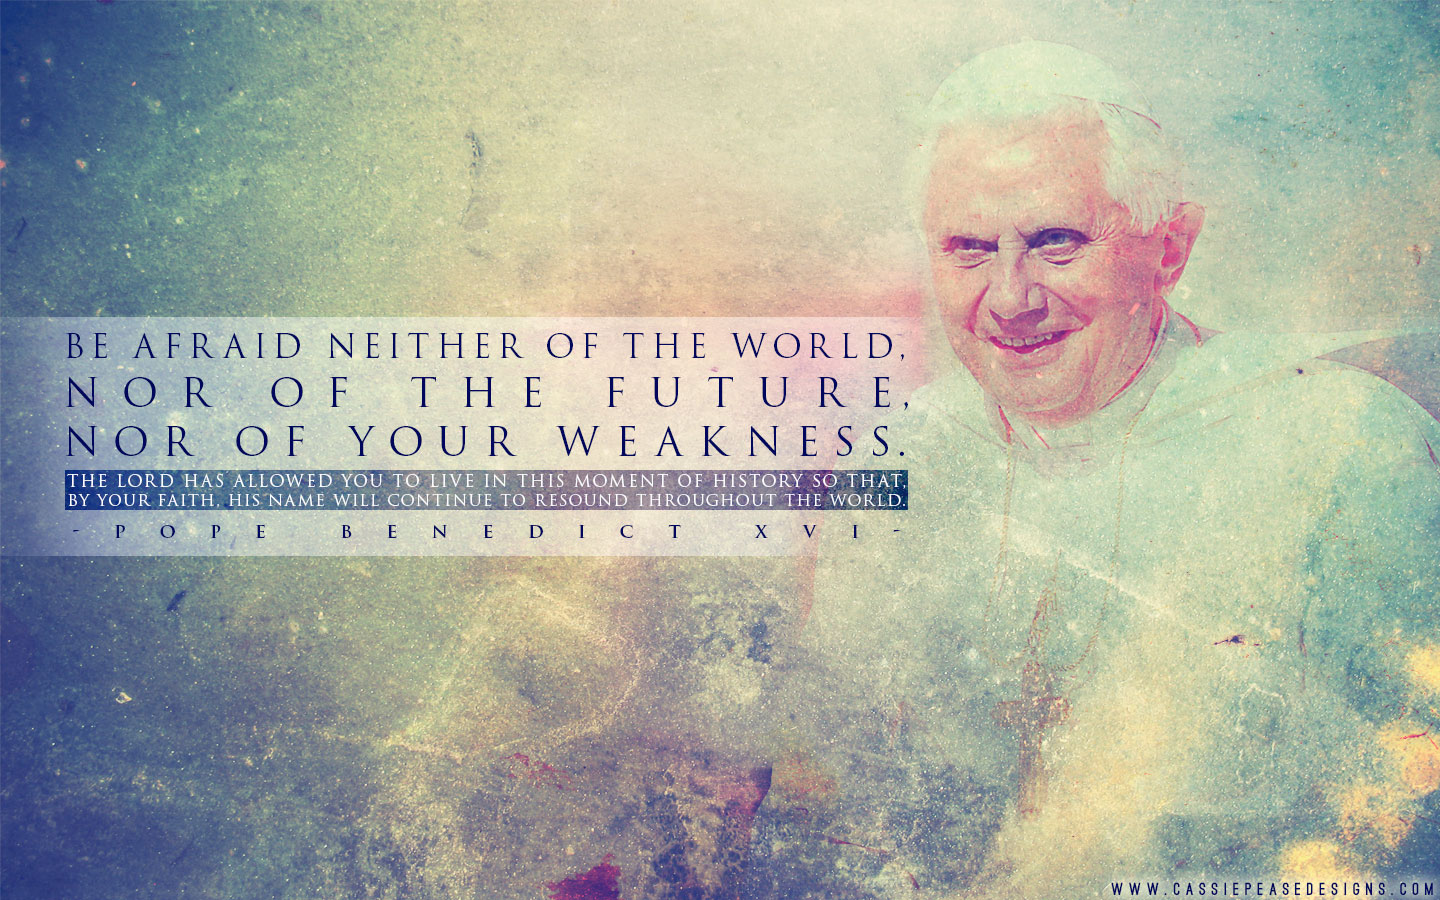 Background Wallpaper Quotes Pope Benedict Xvi Weakness Desktop Wallpaper Cassie